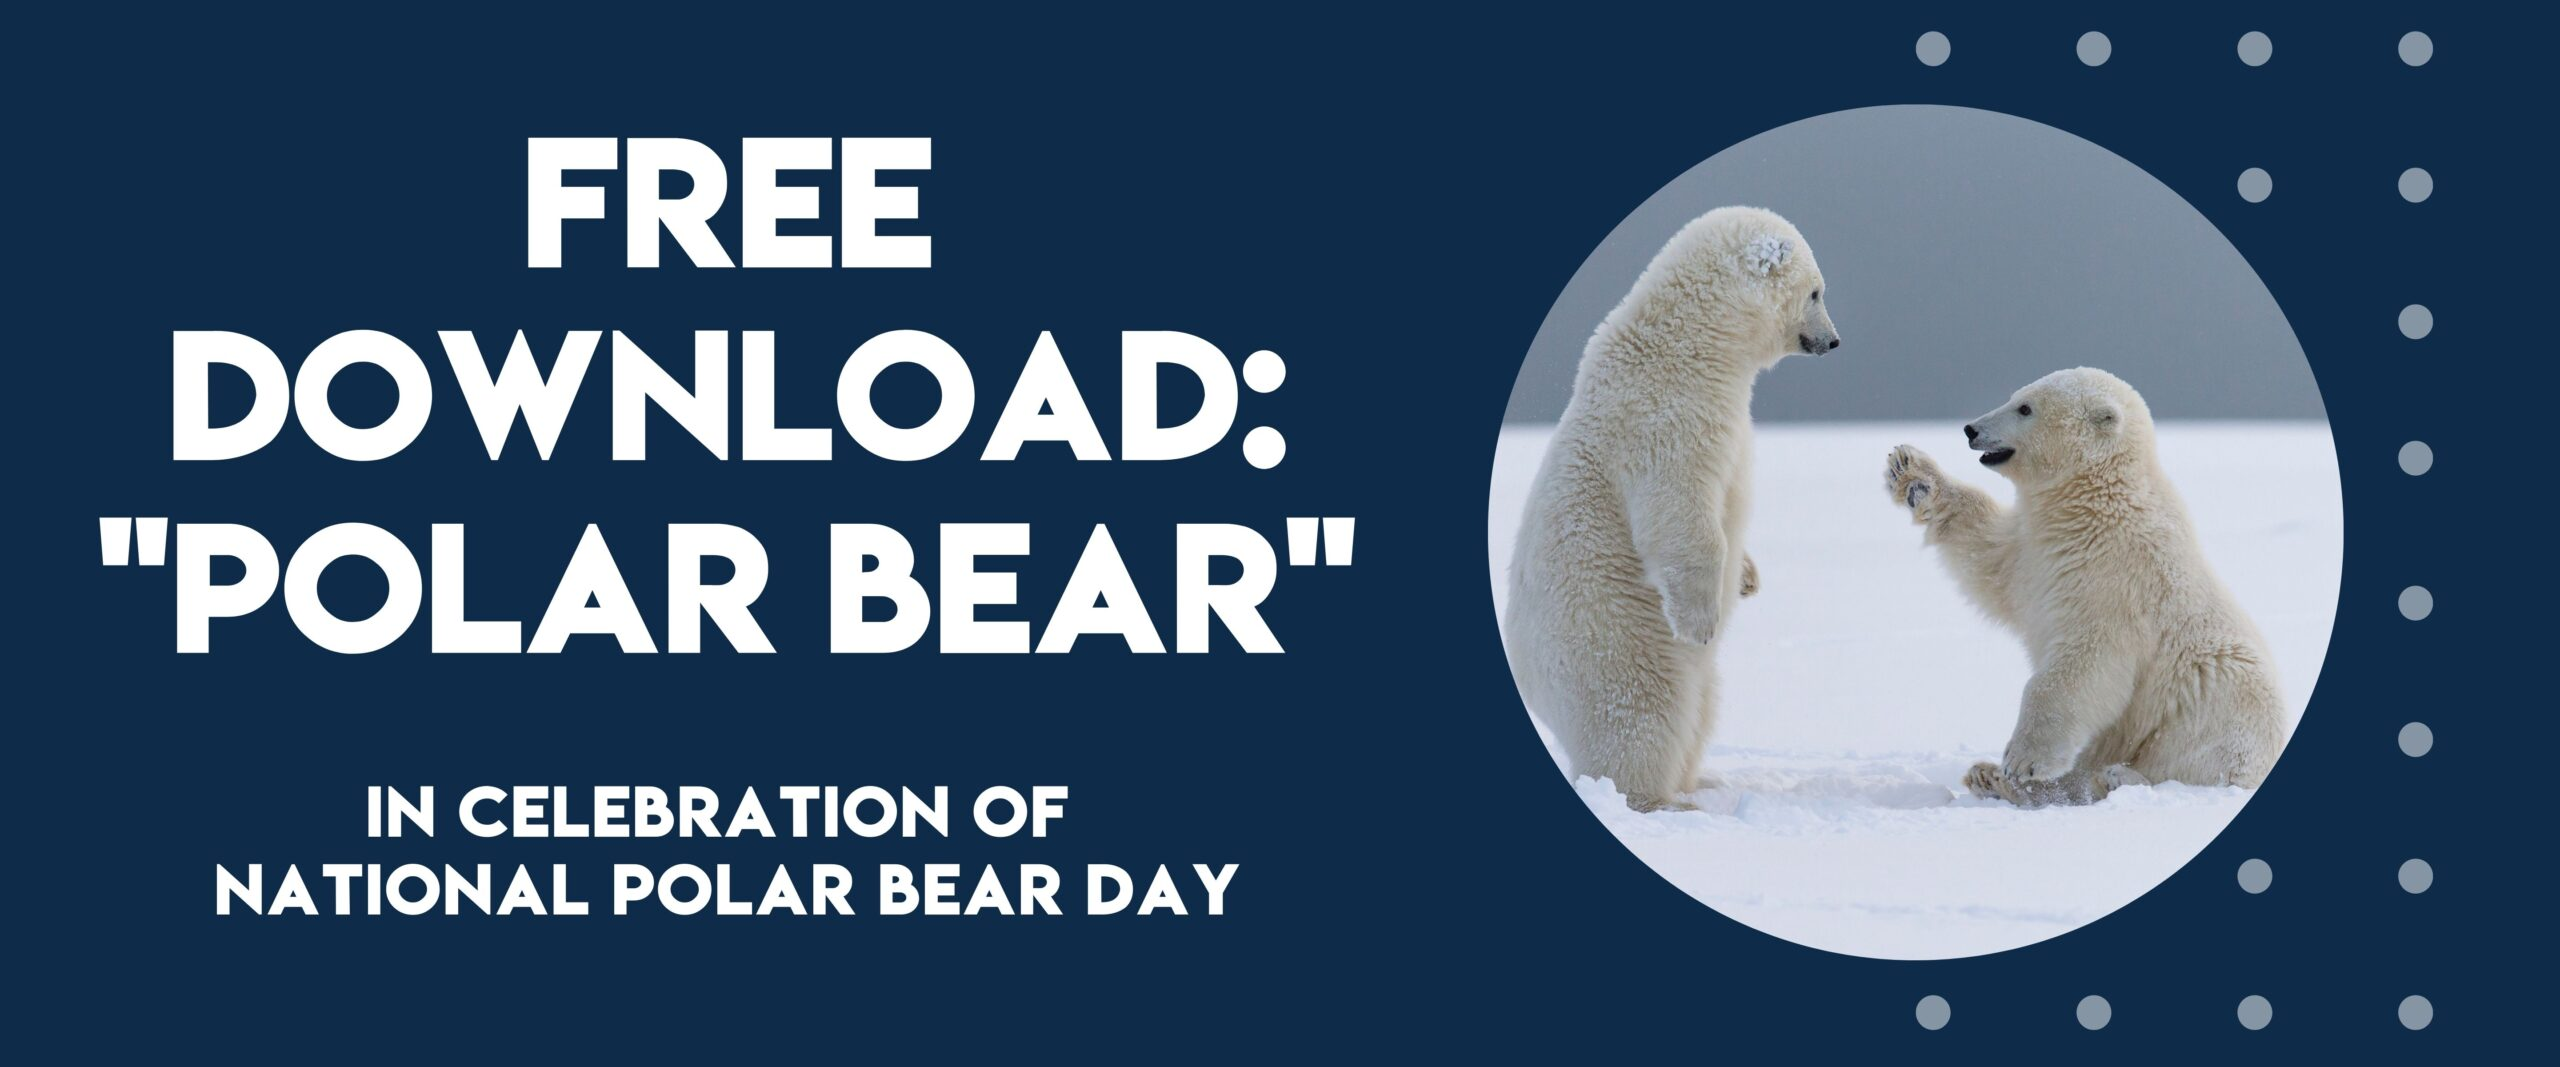 National Polar Bear Day - Free Song Download | Listen & Learn Music